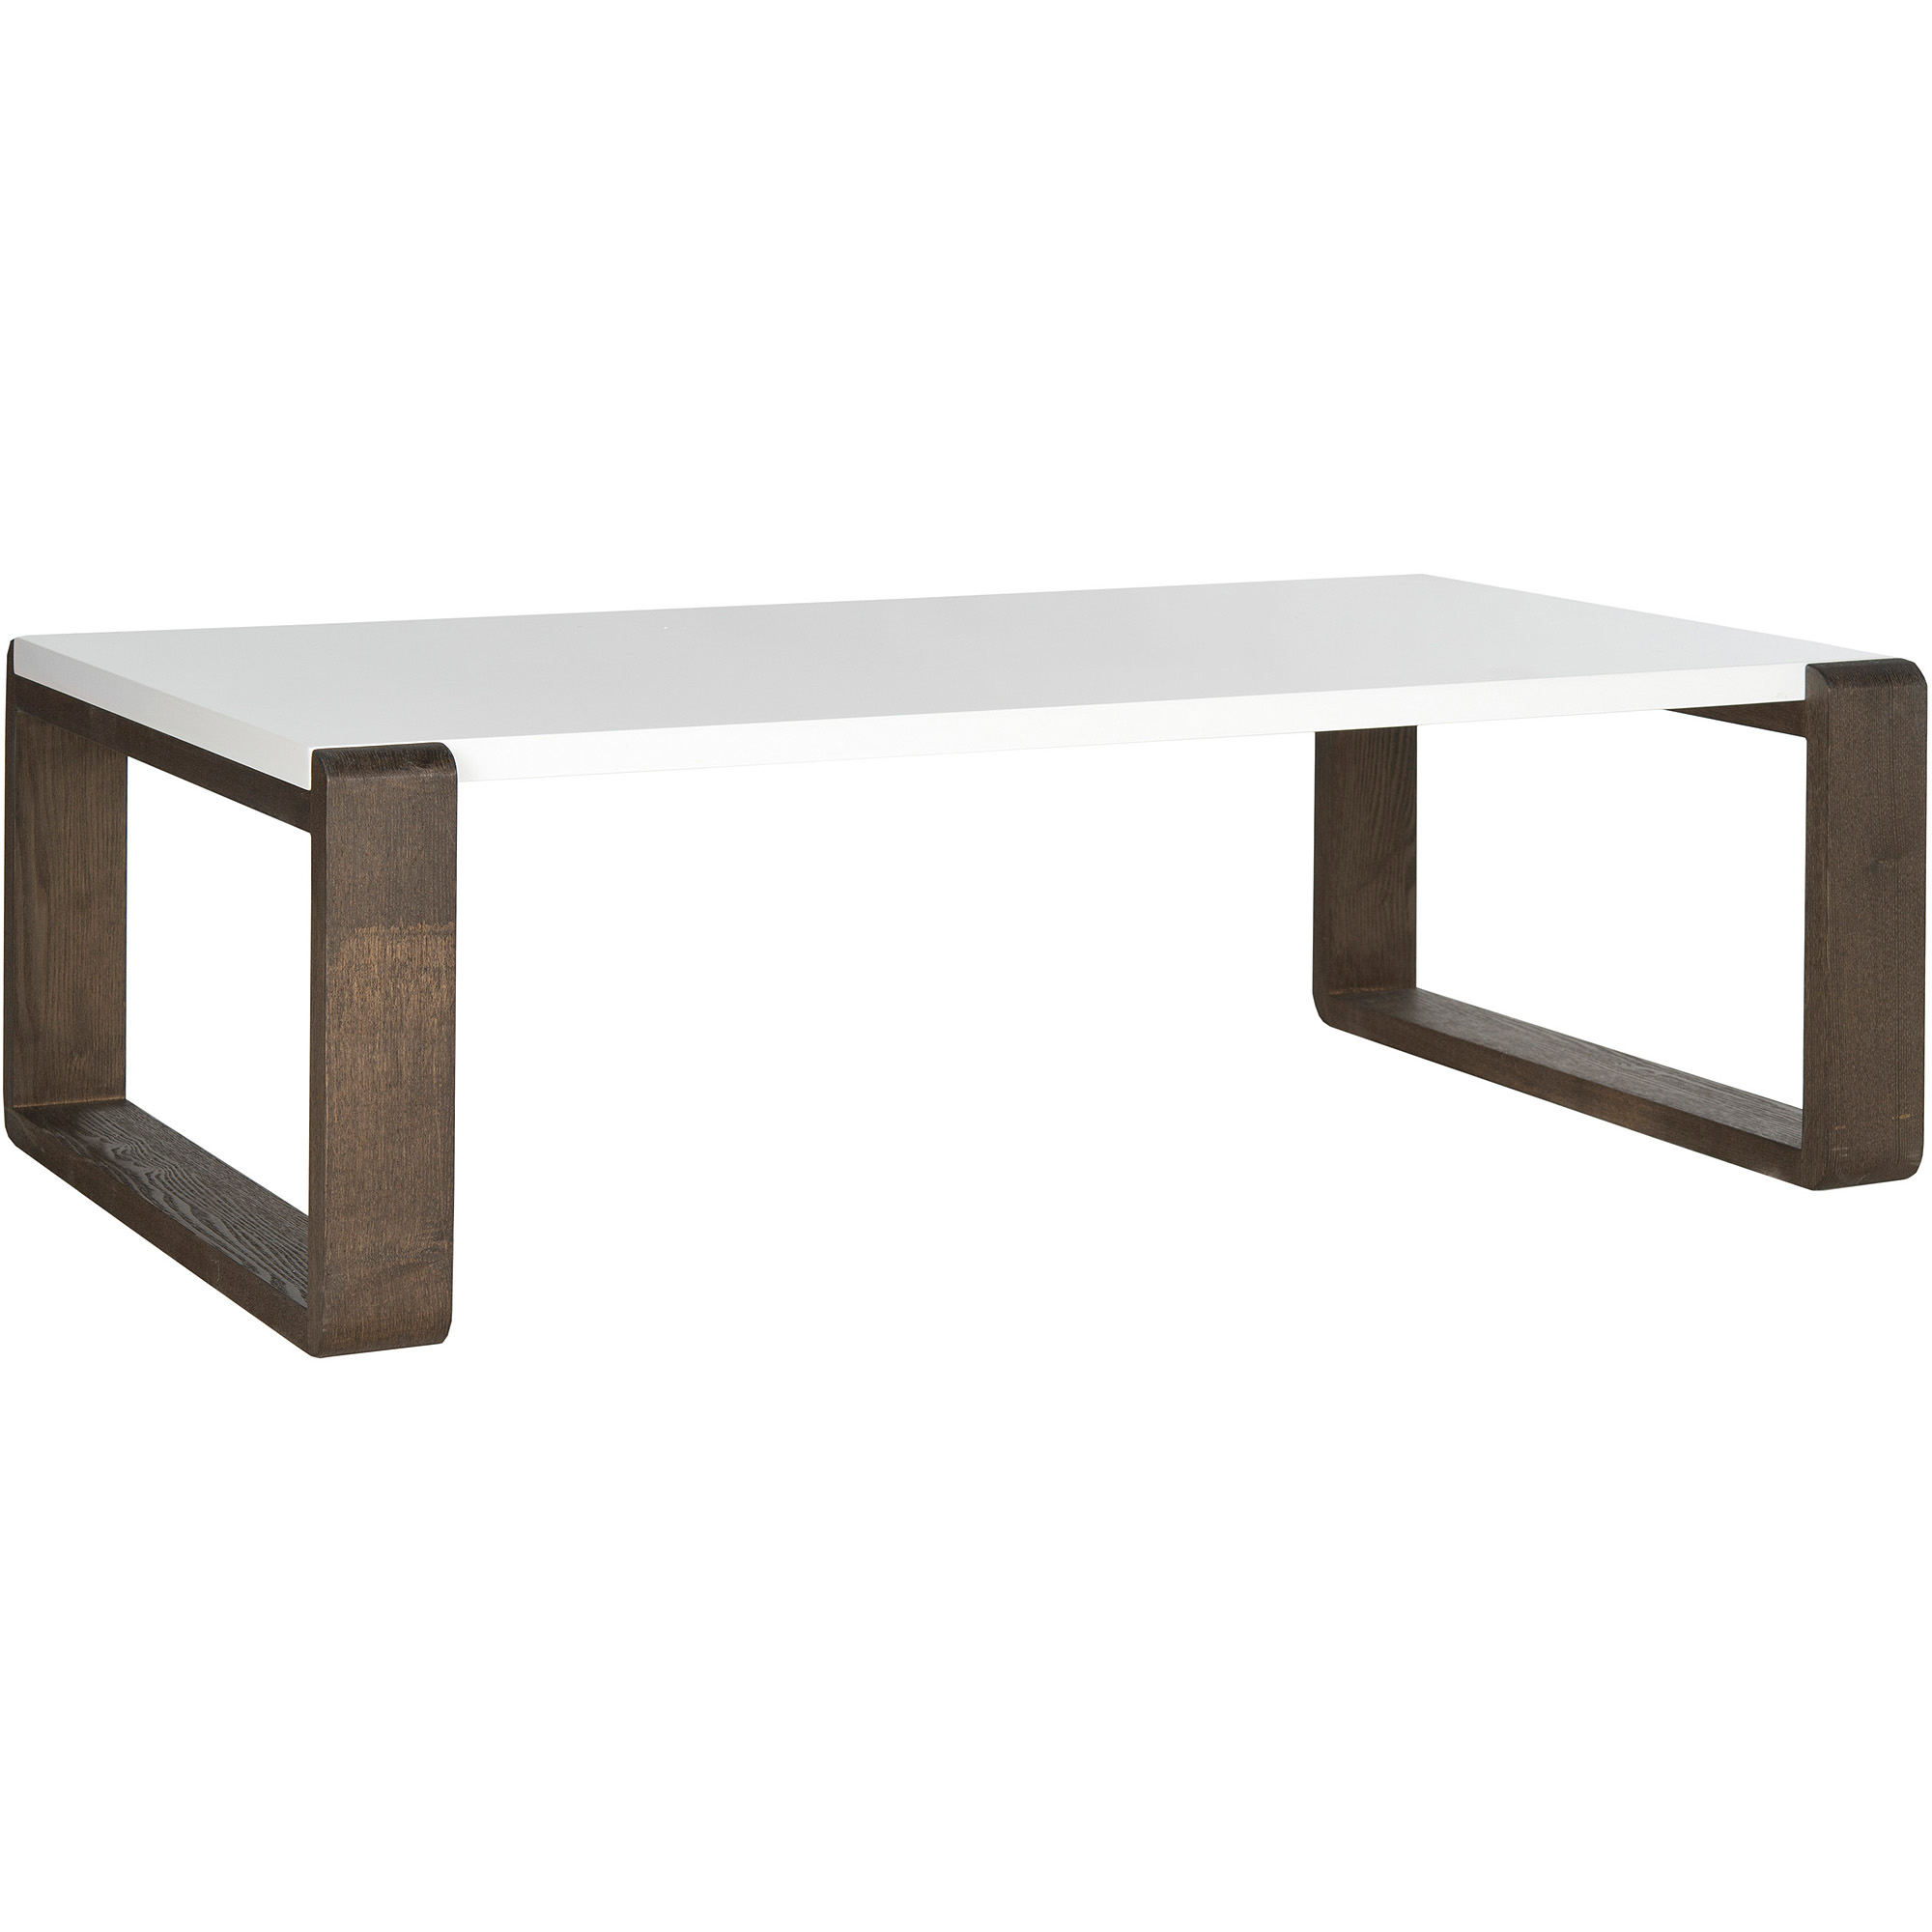 safavieh bartholomew lacquer coffee table, white and dark brown